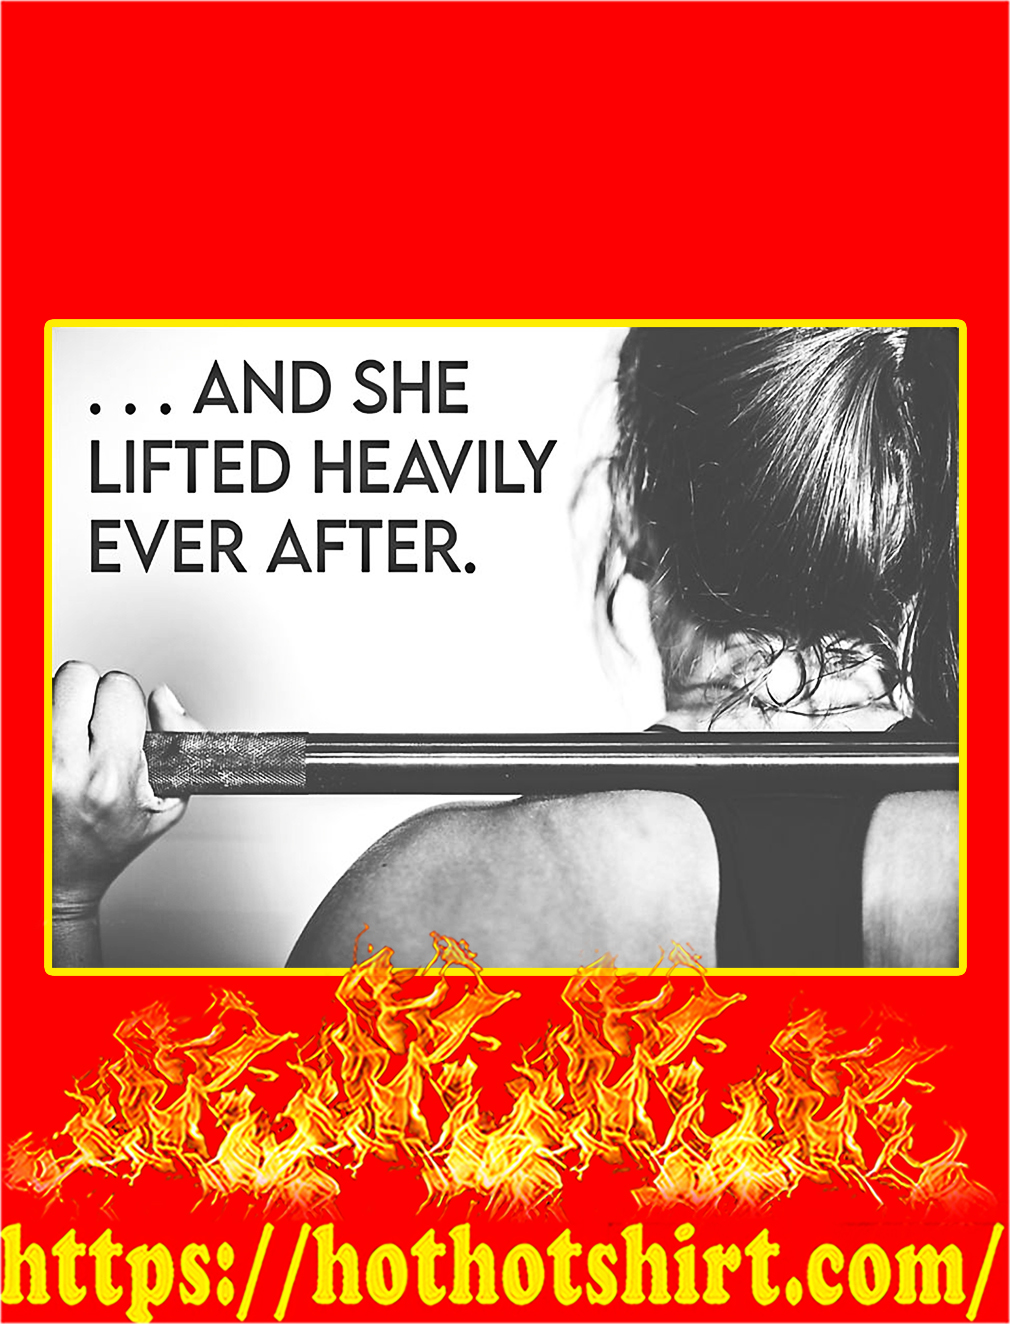 And she lifted heavily ever after fitness poster - A4